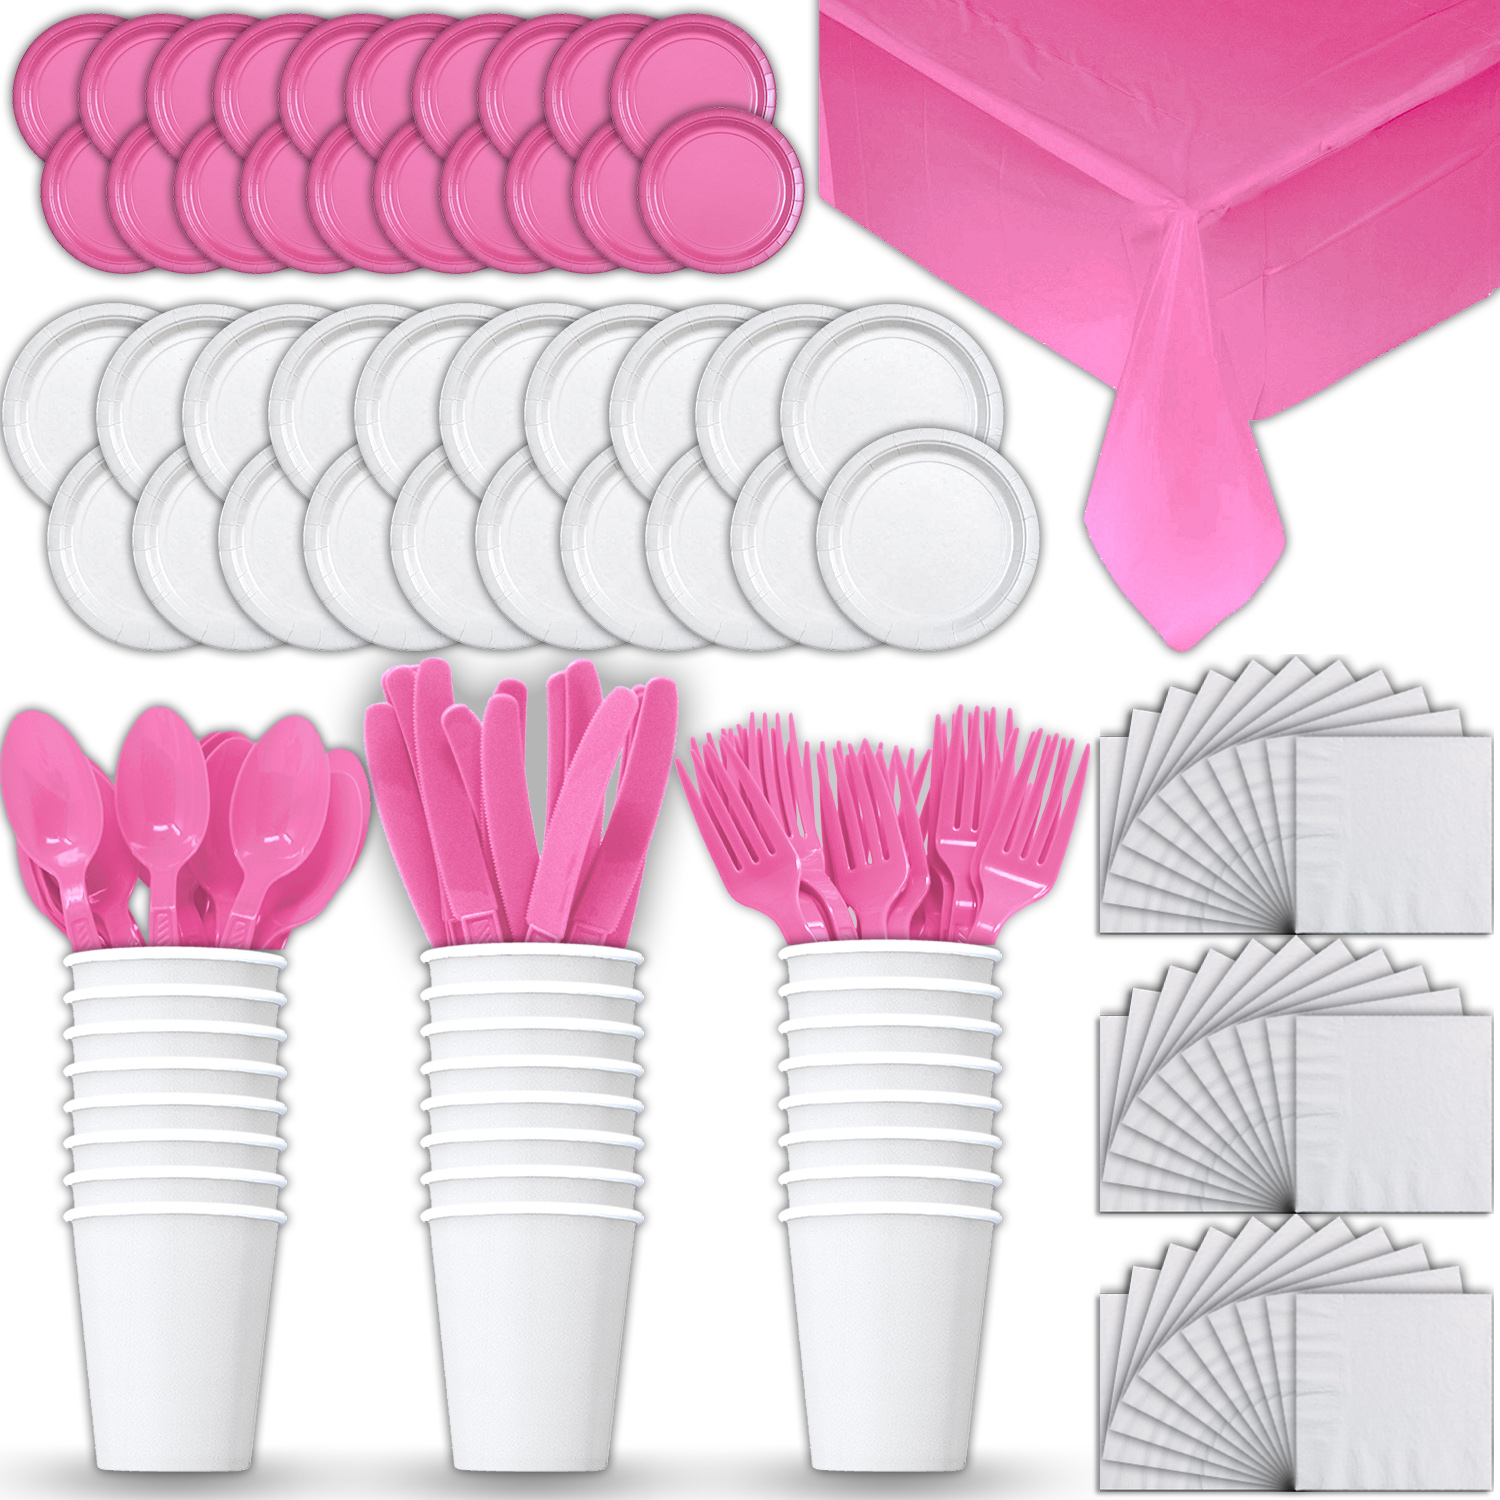 Paper Tableware Set for 24 - White & Hot Pink - Dinner and Dessert Plates, Cups, Napkins, Cutlery (Spoons, Forks, Knives), and Tablecloths - Full Two-Tone Party Supplies Pack